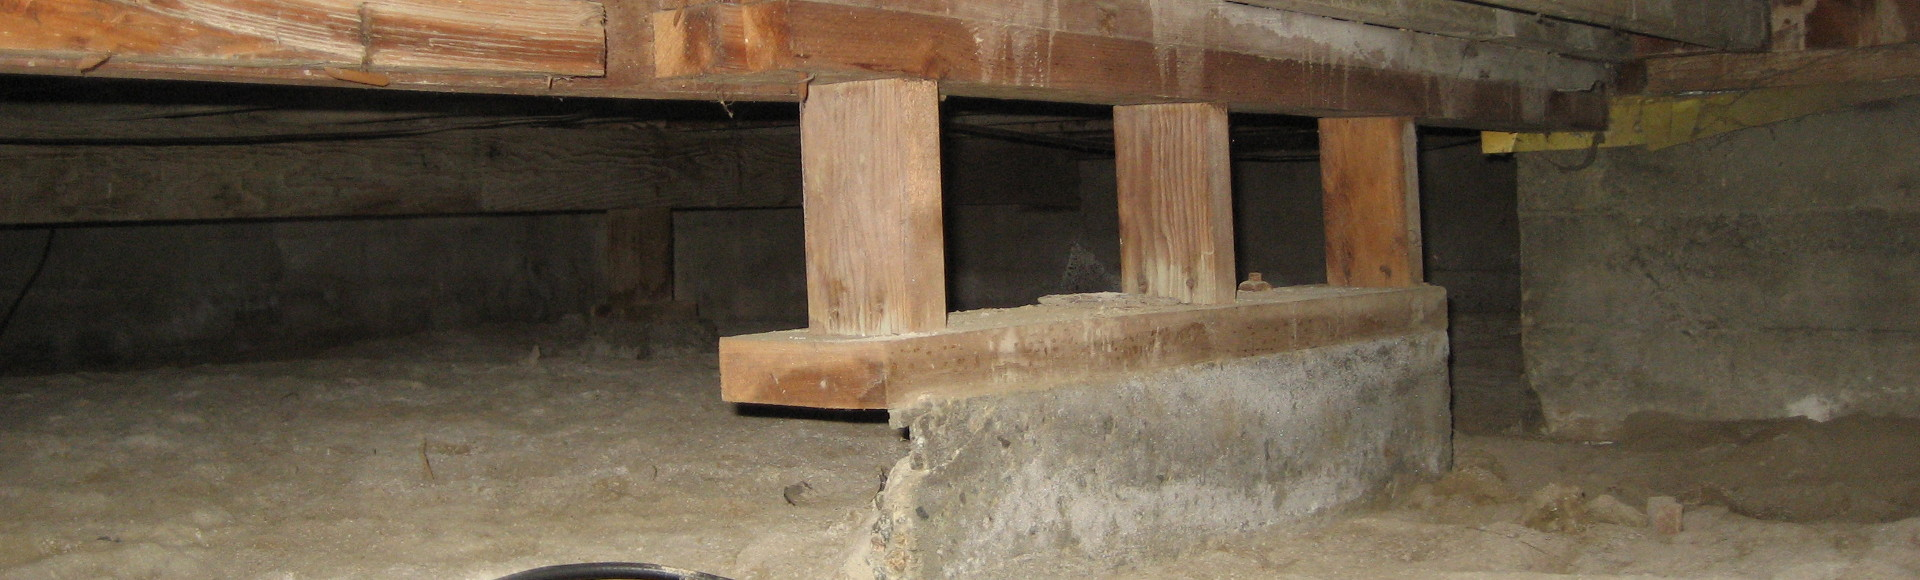 Crawl Space Inspections | Dependable Home Inspections Augusta GA